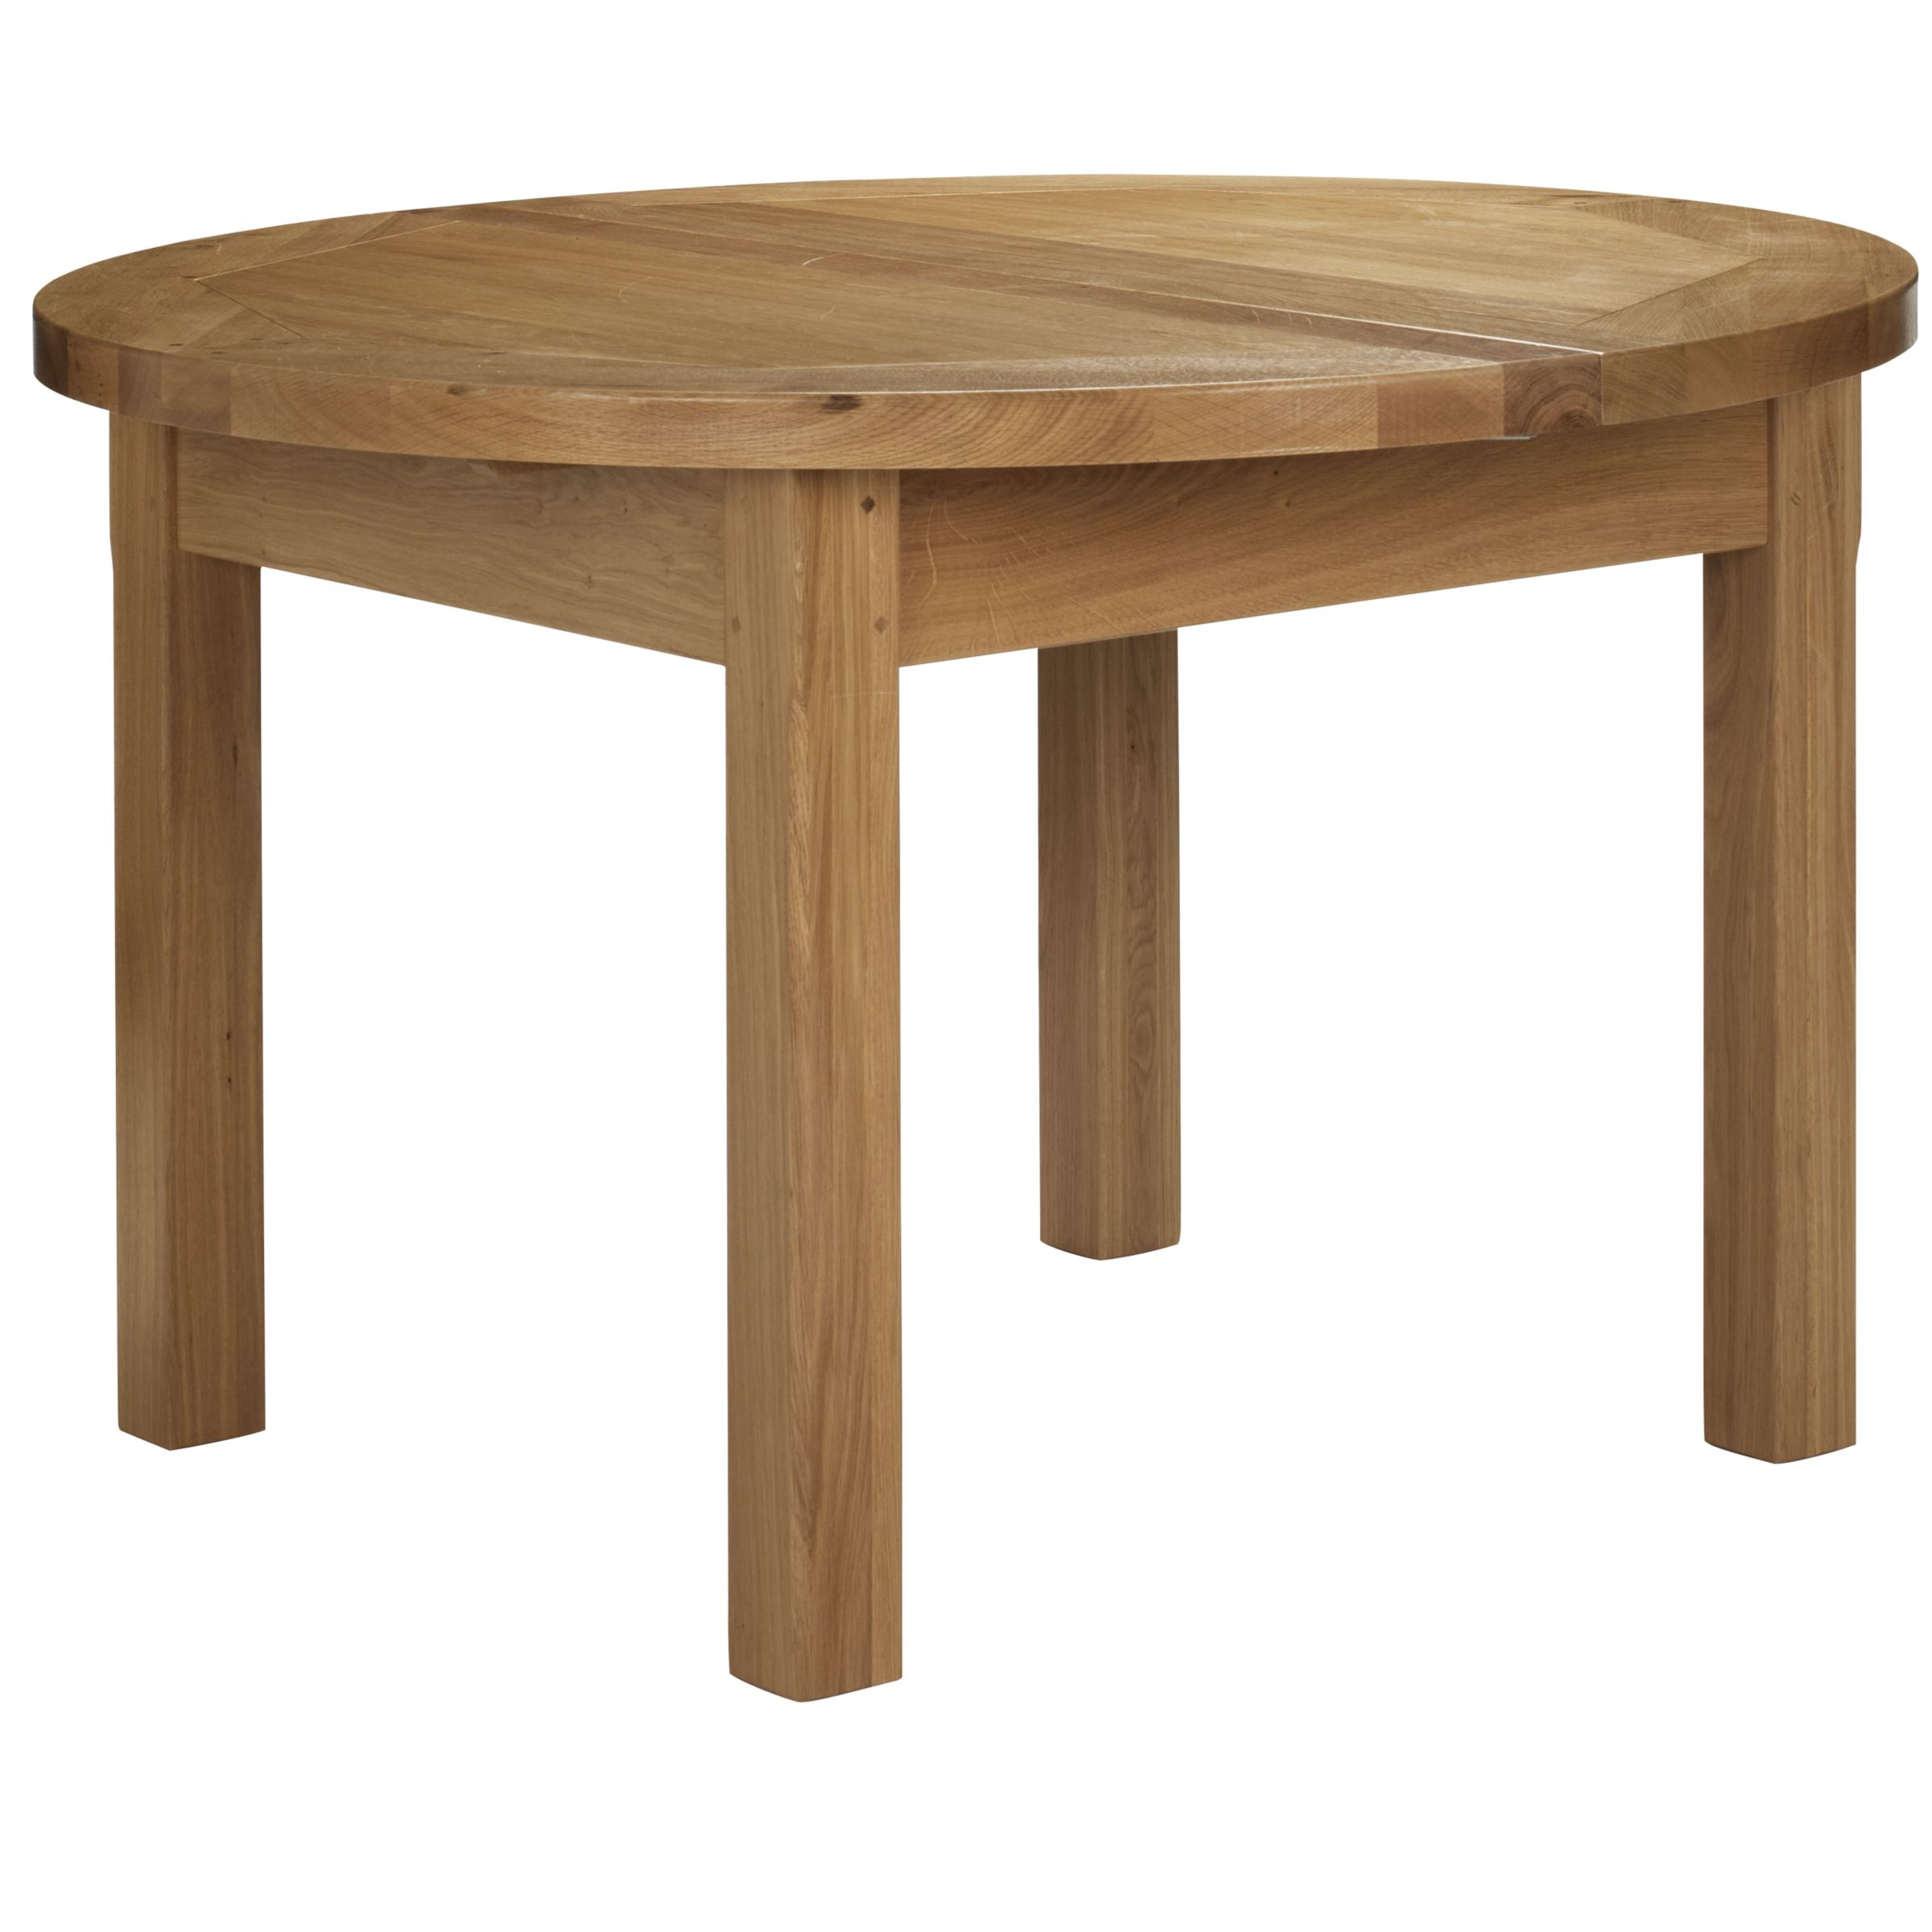 rustic oak extending dining table : 231141006 from www.comparestoreprices.co.uk size 1600 x 1600 jpeg 179kB